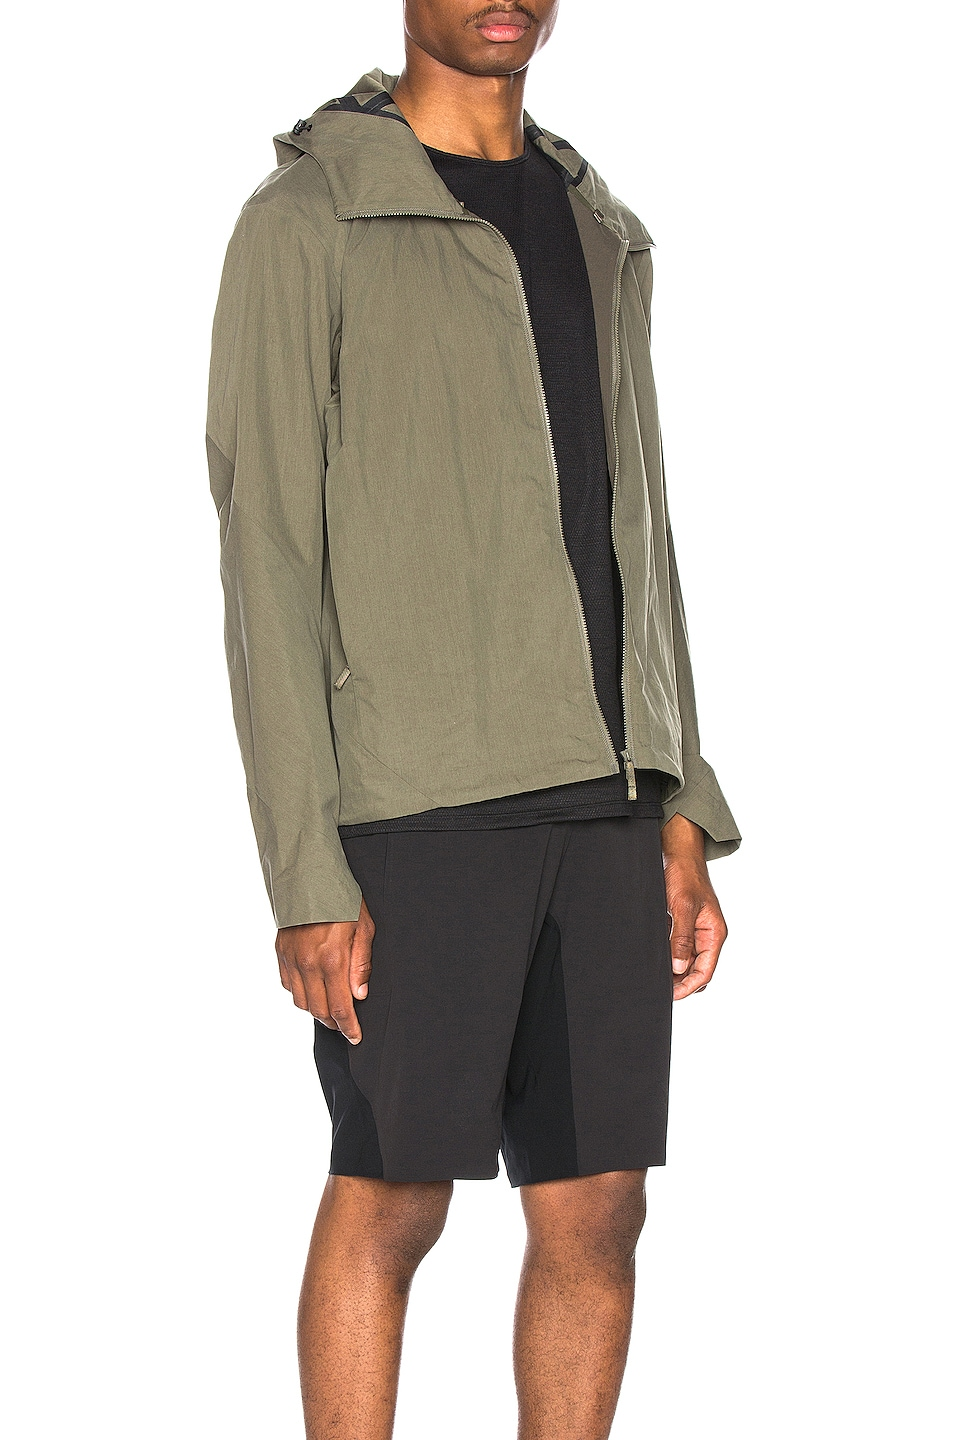 Image 3 of Arc'teryx Veilance Isogon Jacket in Loden